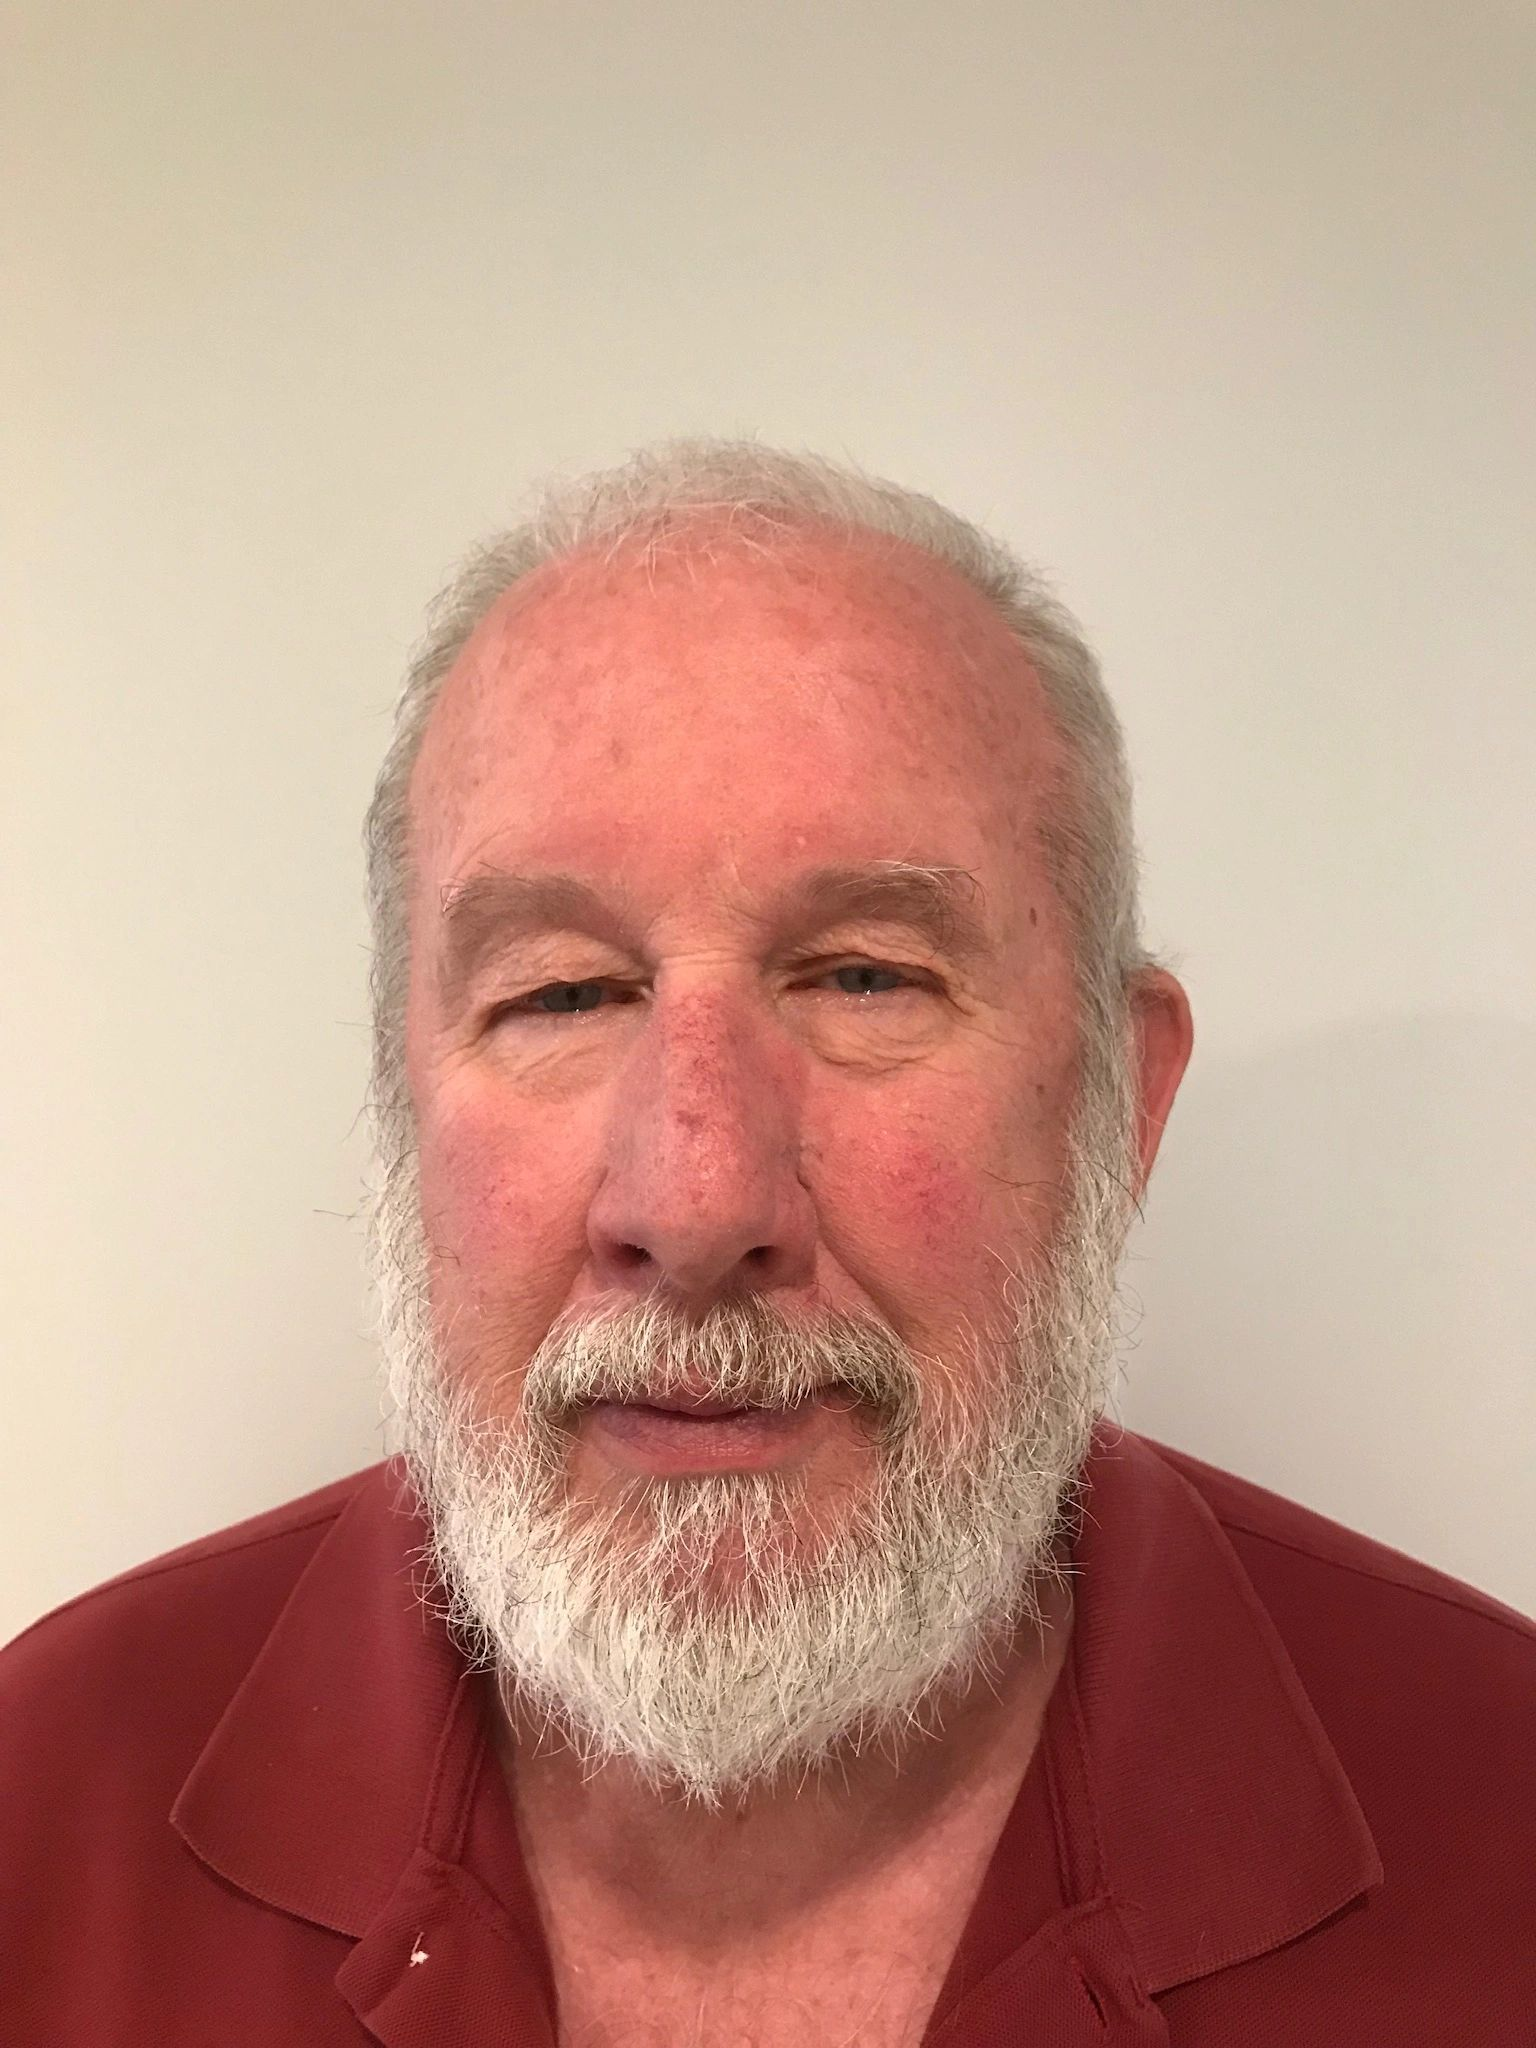 Earl Robertson: ABC Certified Prosthetist, Licensed Orthotist and Hospitalist. Earl is a Marine Veteran with over 43 years of O&P experience.